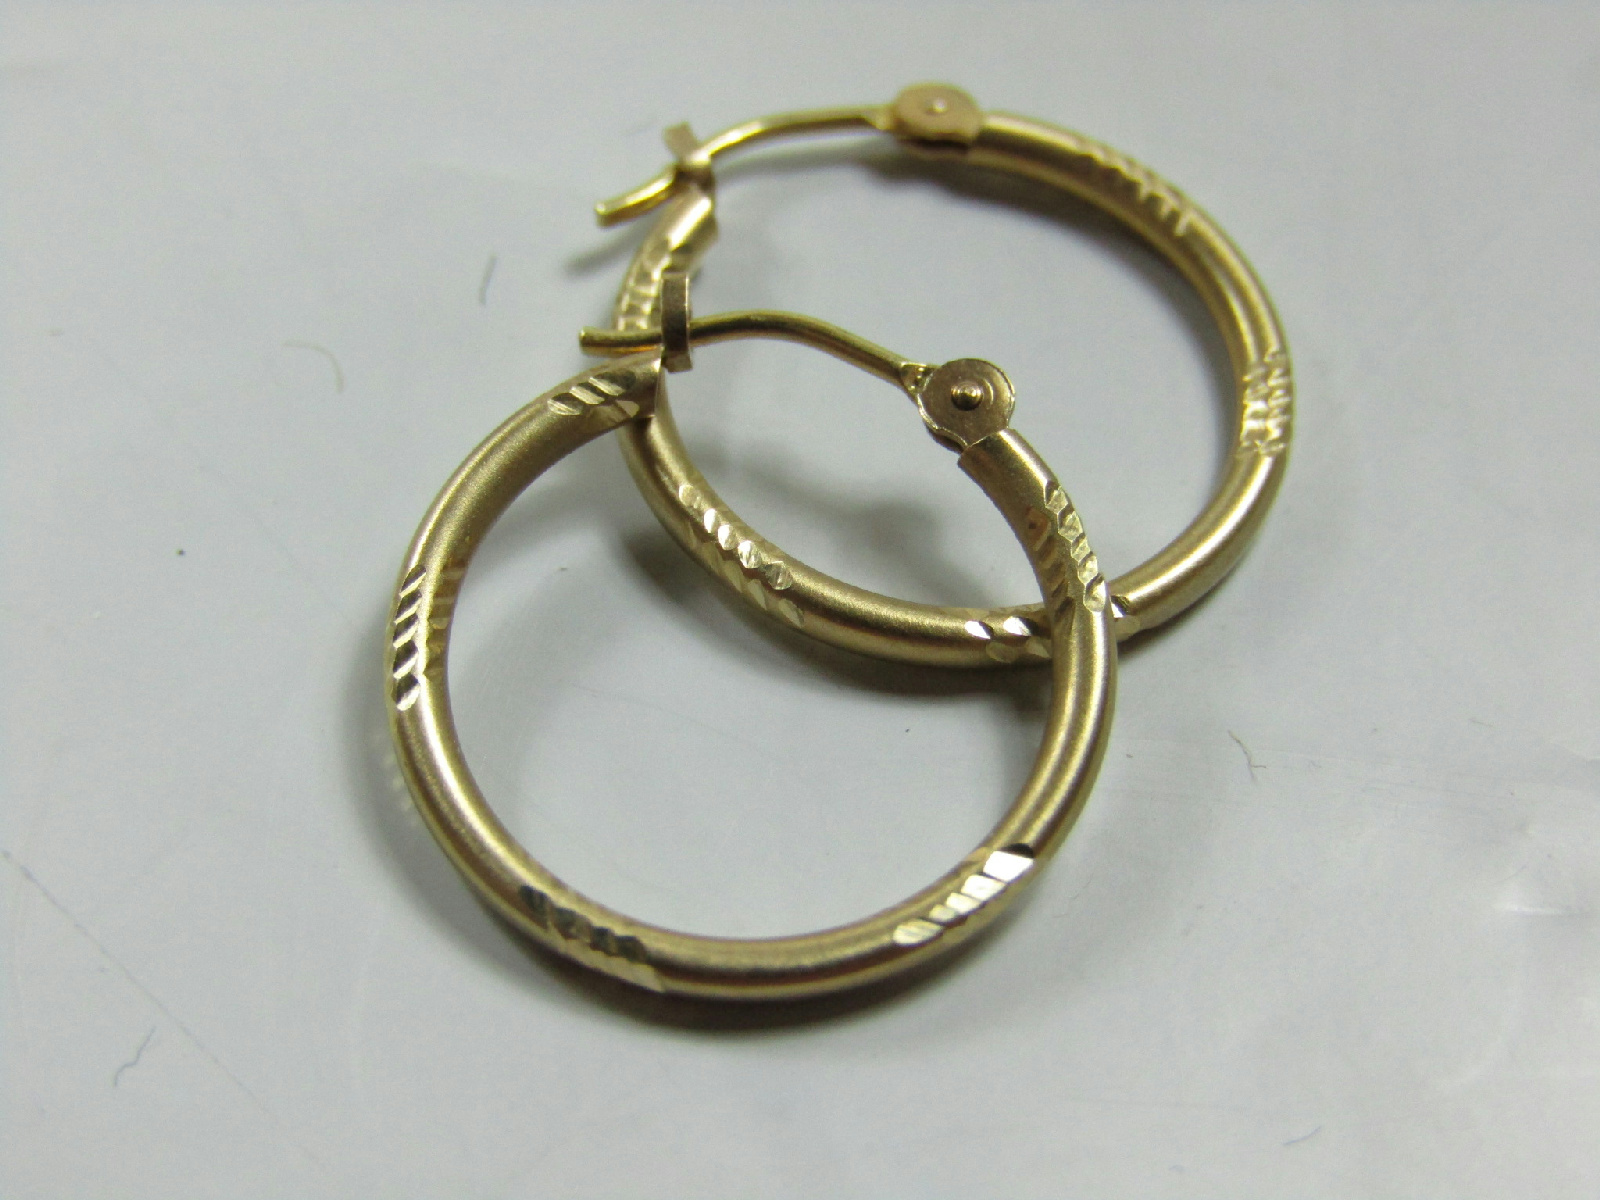 small thin gold hoop earrings 10kt marked yellow gold jewelry etched design small thin 9987